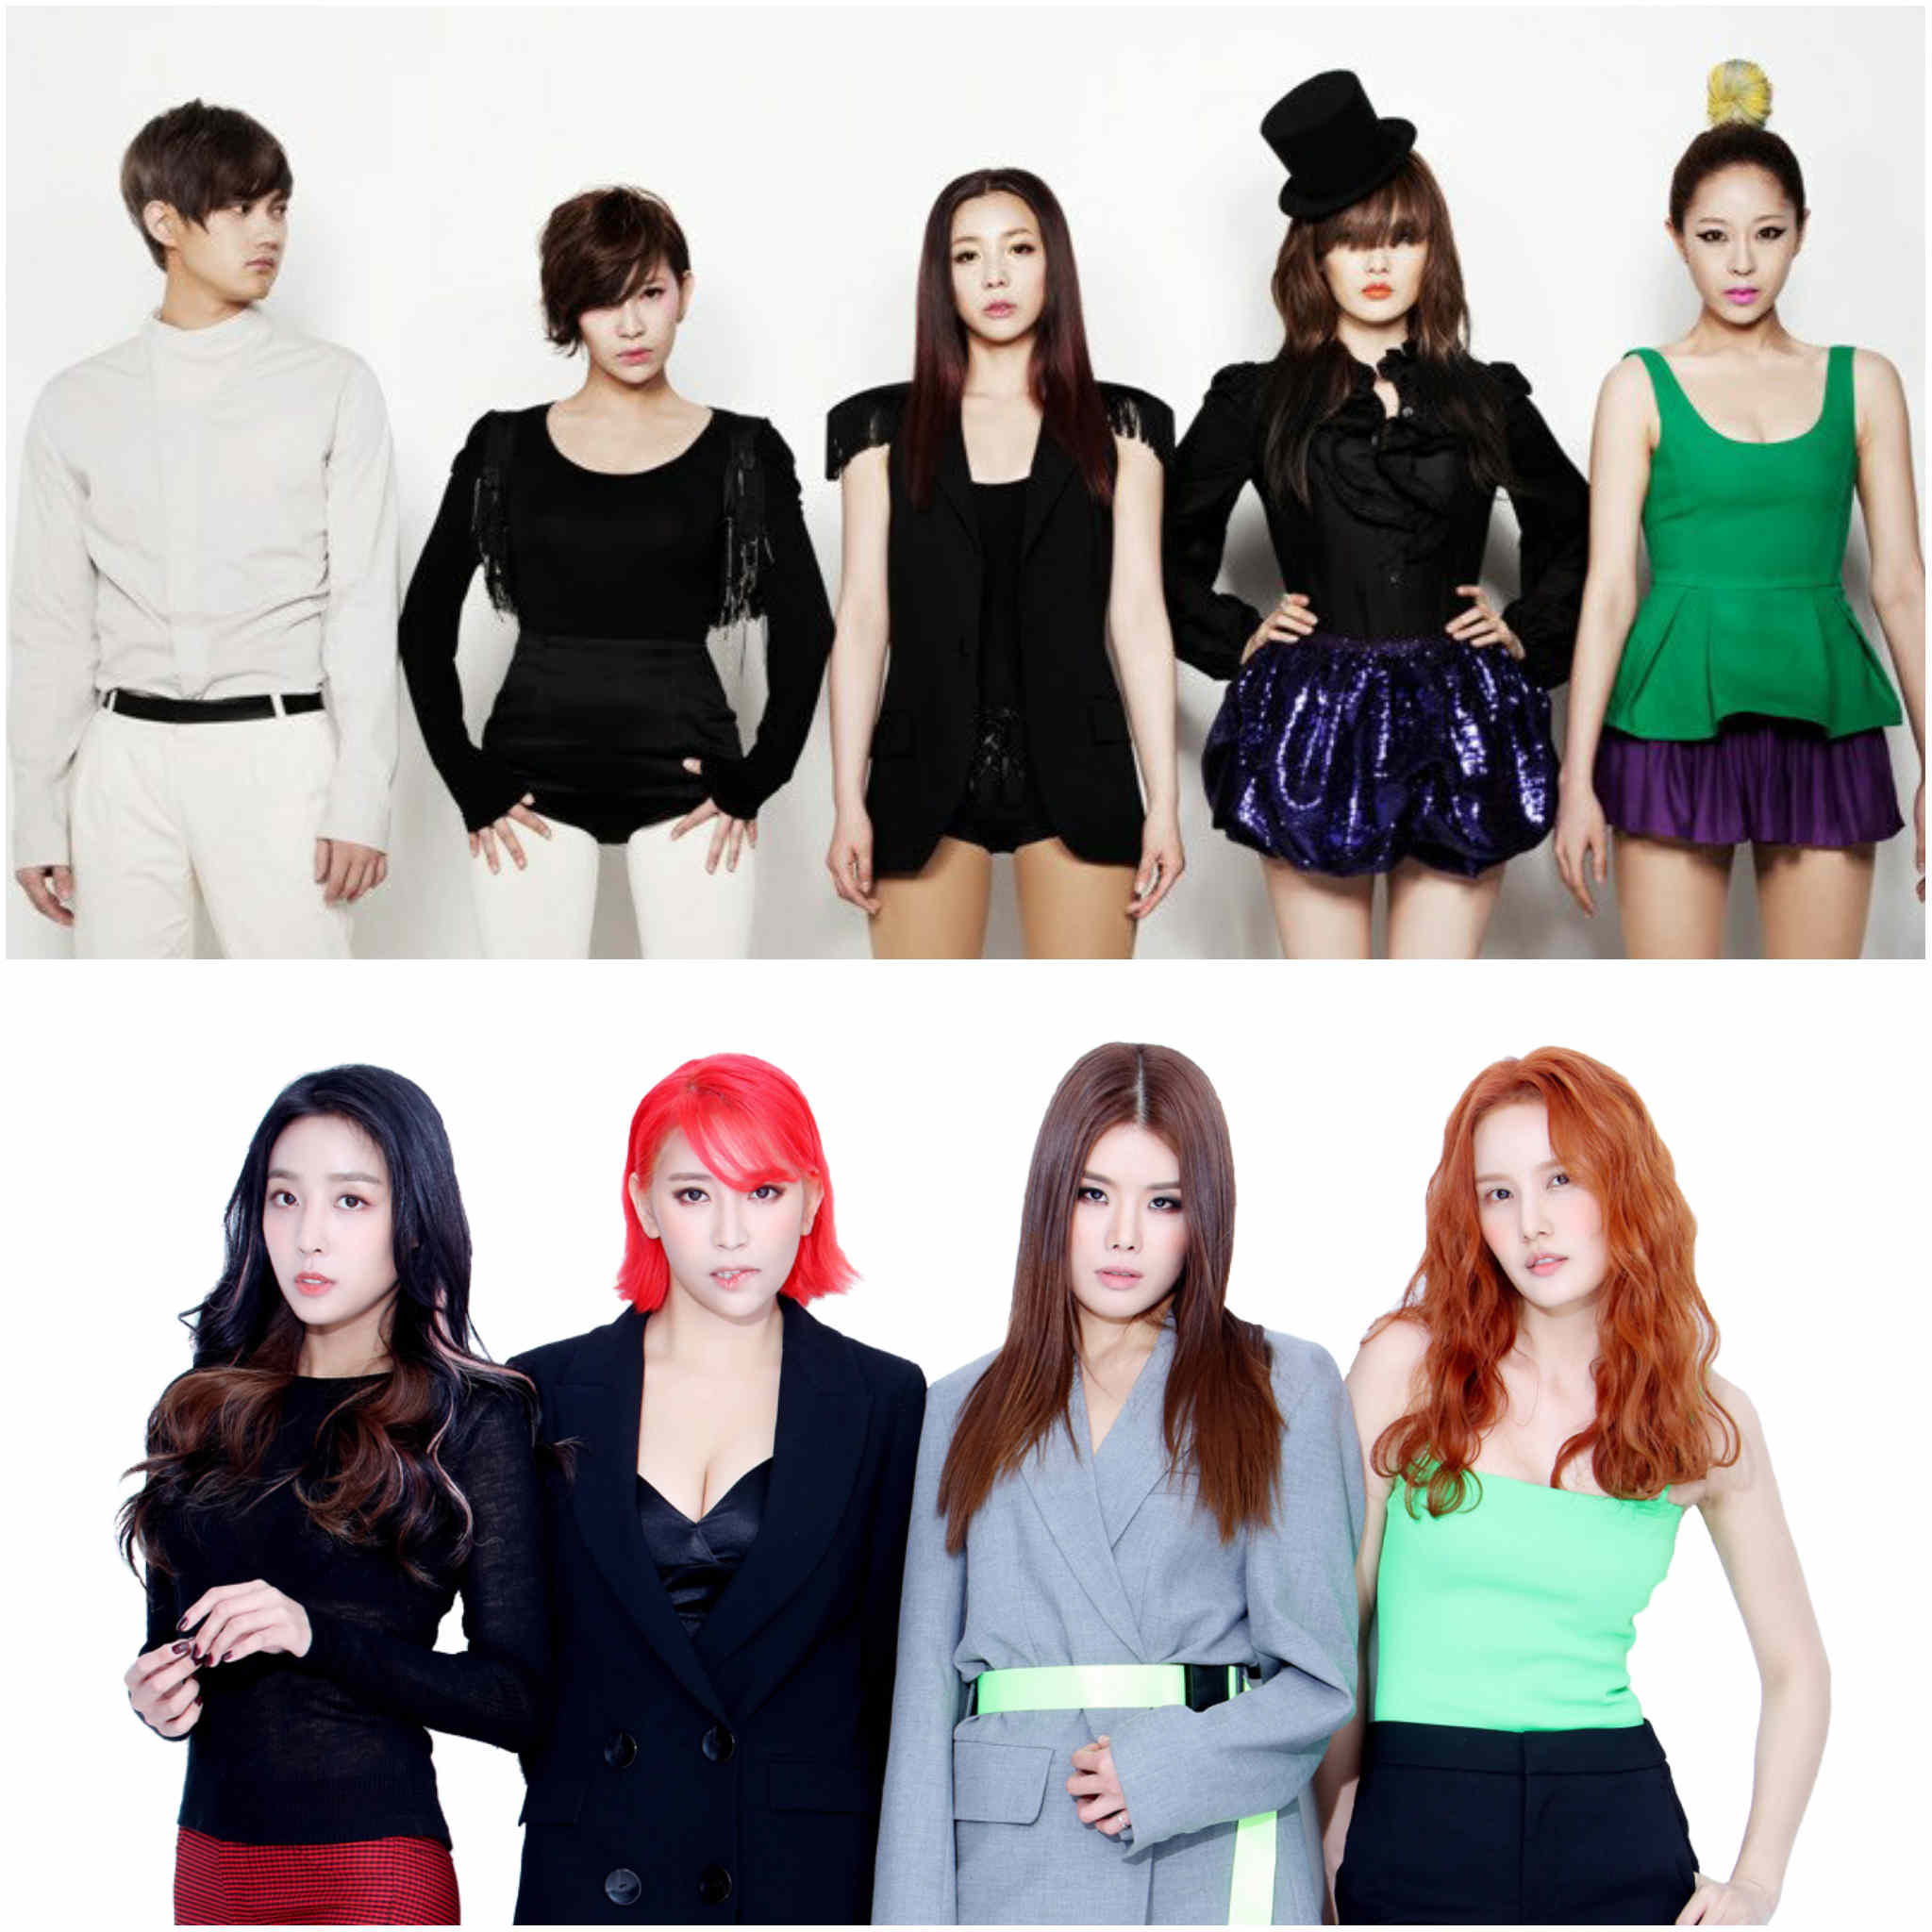 2nd generation K-pop groups - Sunny Hill